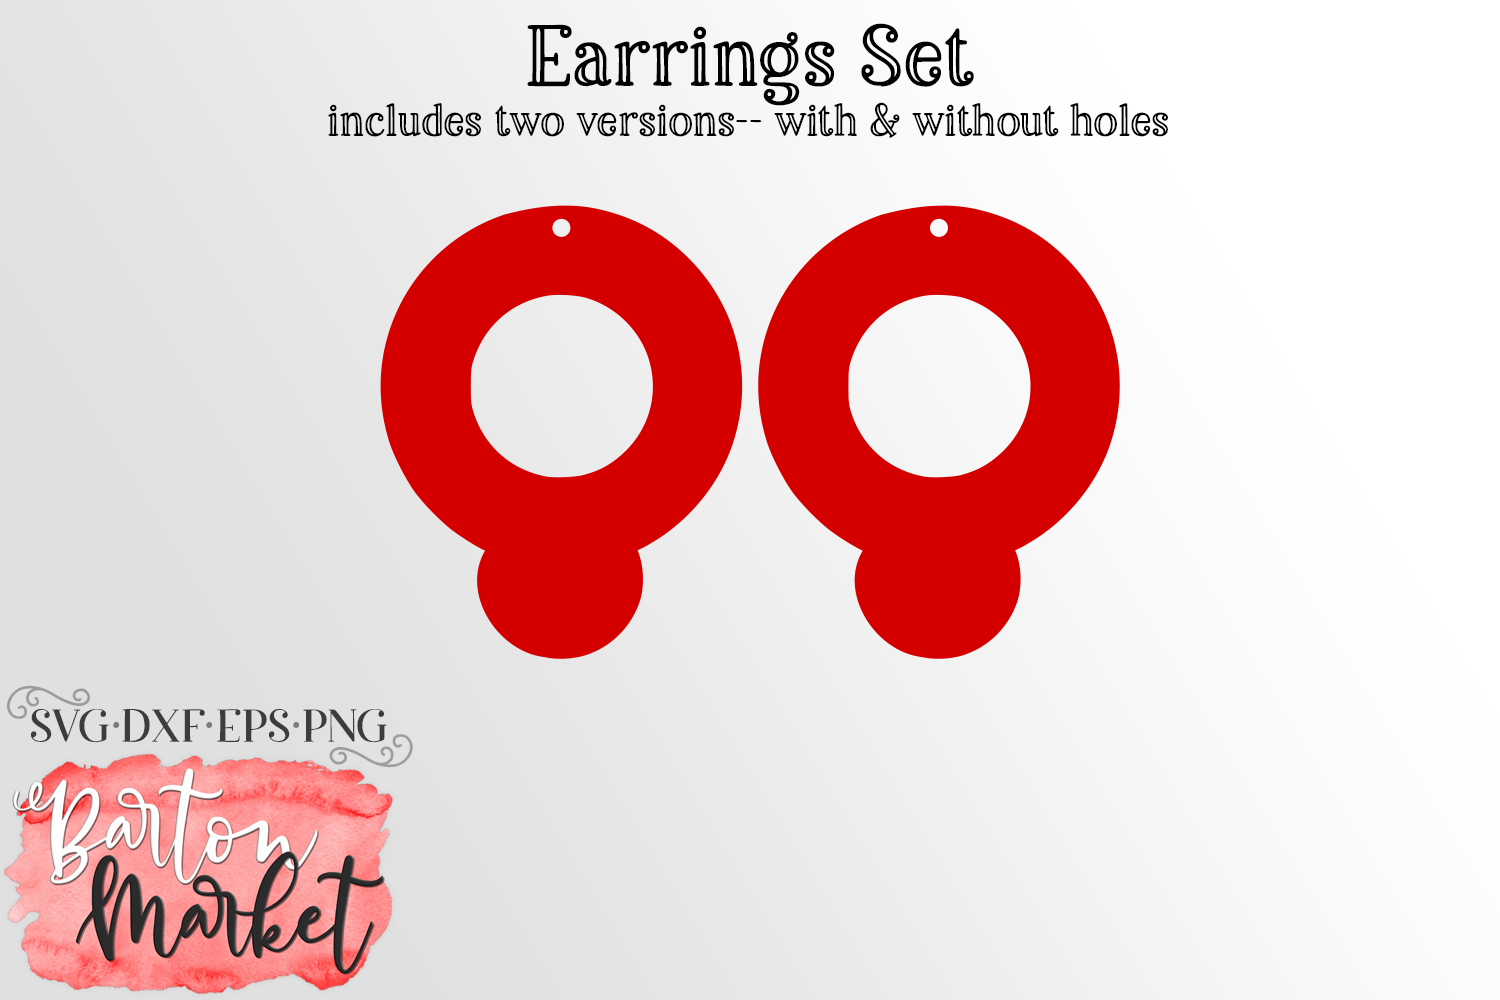 Earrings Set Circles With Moon SVG DXF EPS PNG example image 1